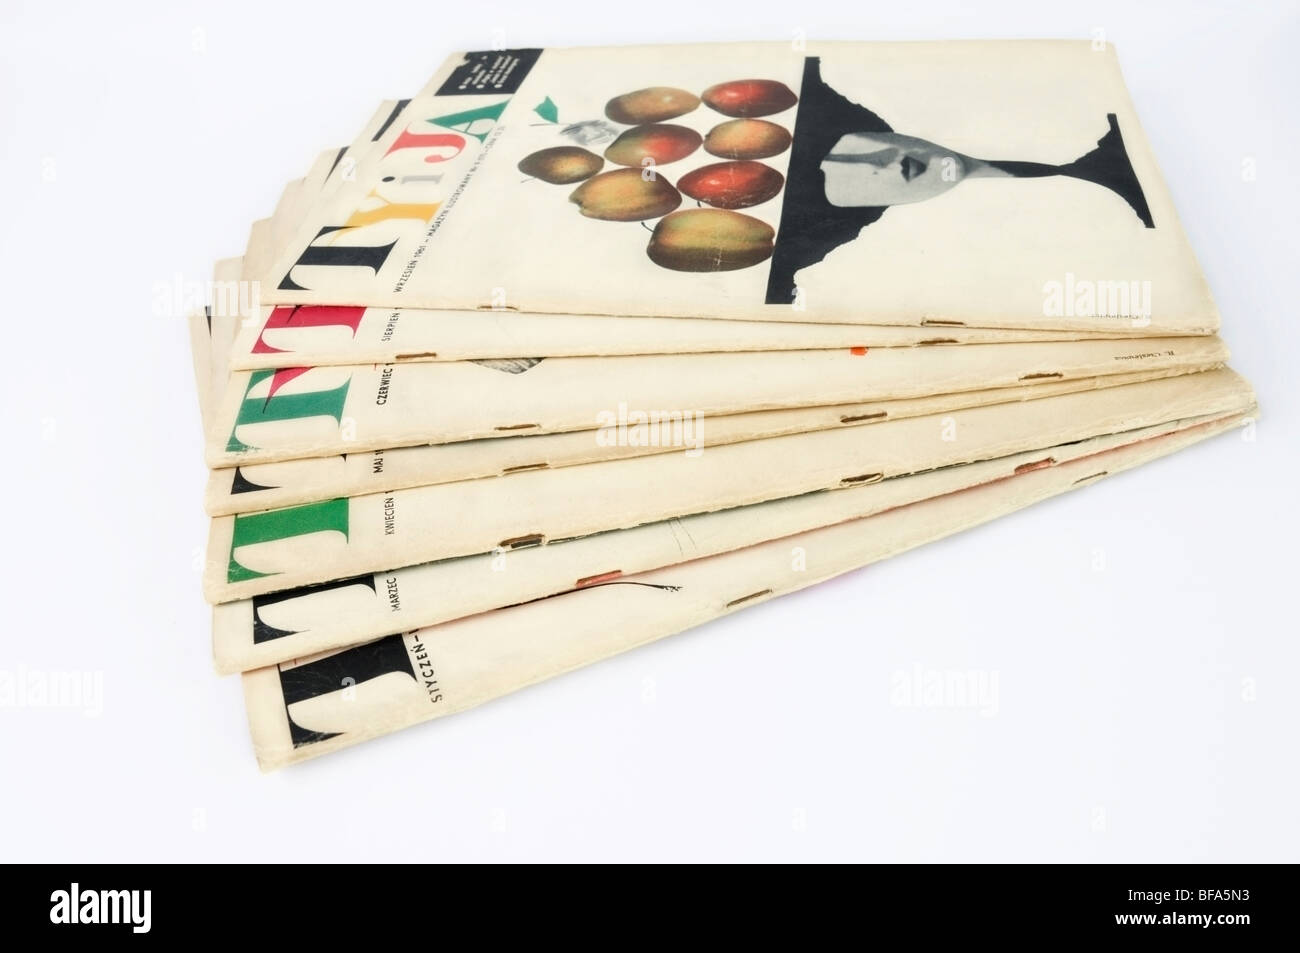 Seven copies of Ty i Ja, 'You and Me' Illustrated Polish Magazine collection from 1961, front cover by R. Cieślewicz - Stock Image